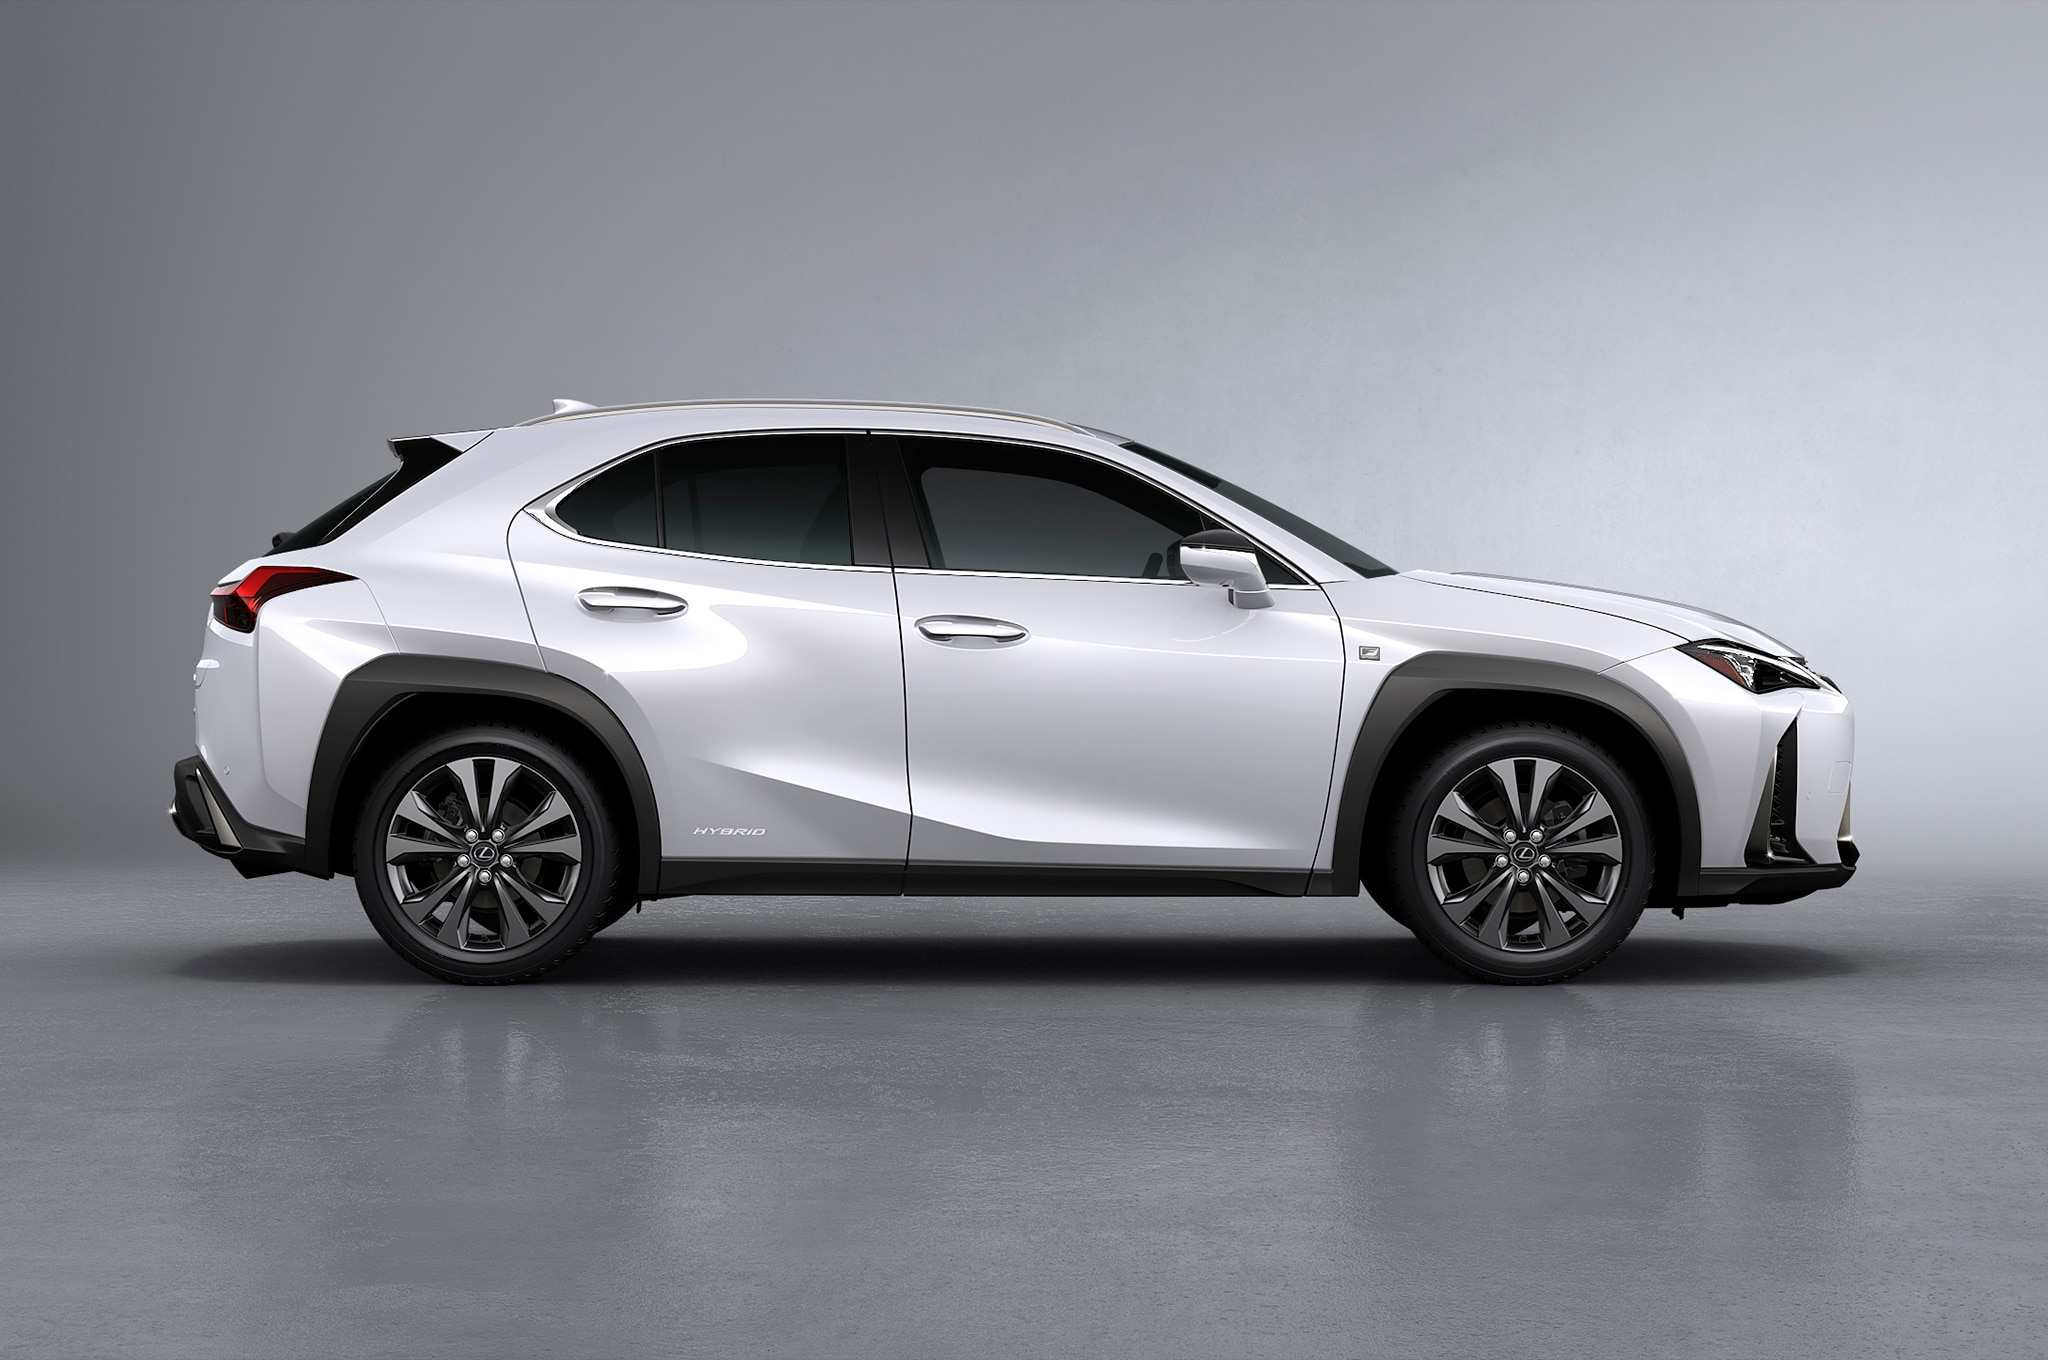 90 Gallery of 2019 Lexus Ux Canada Specs and Review by 2019 Lexus Ux Canada